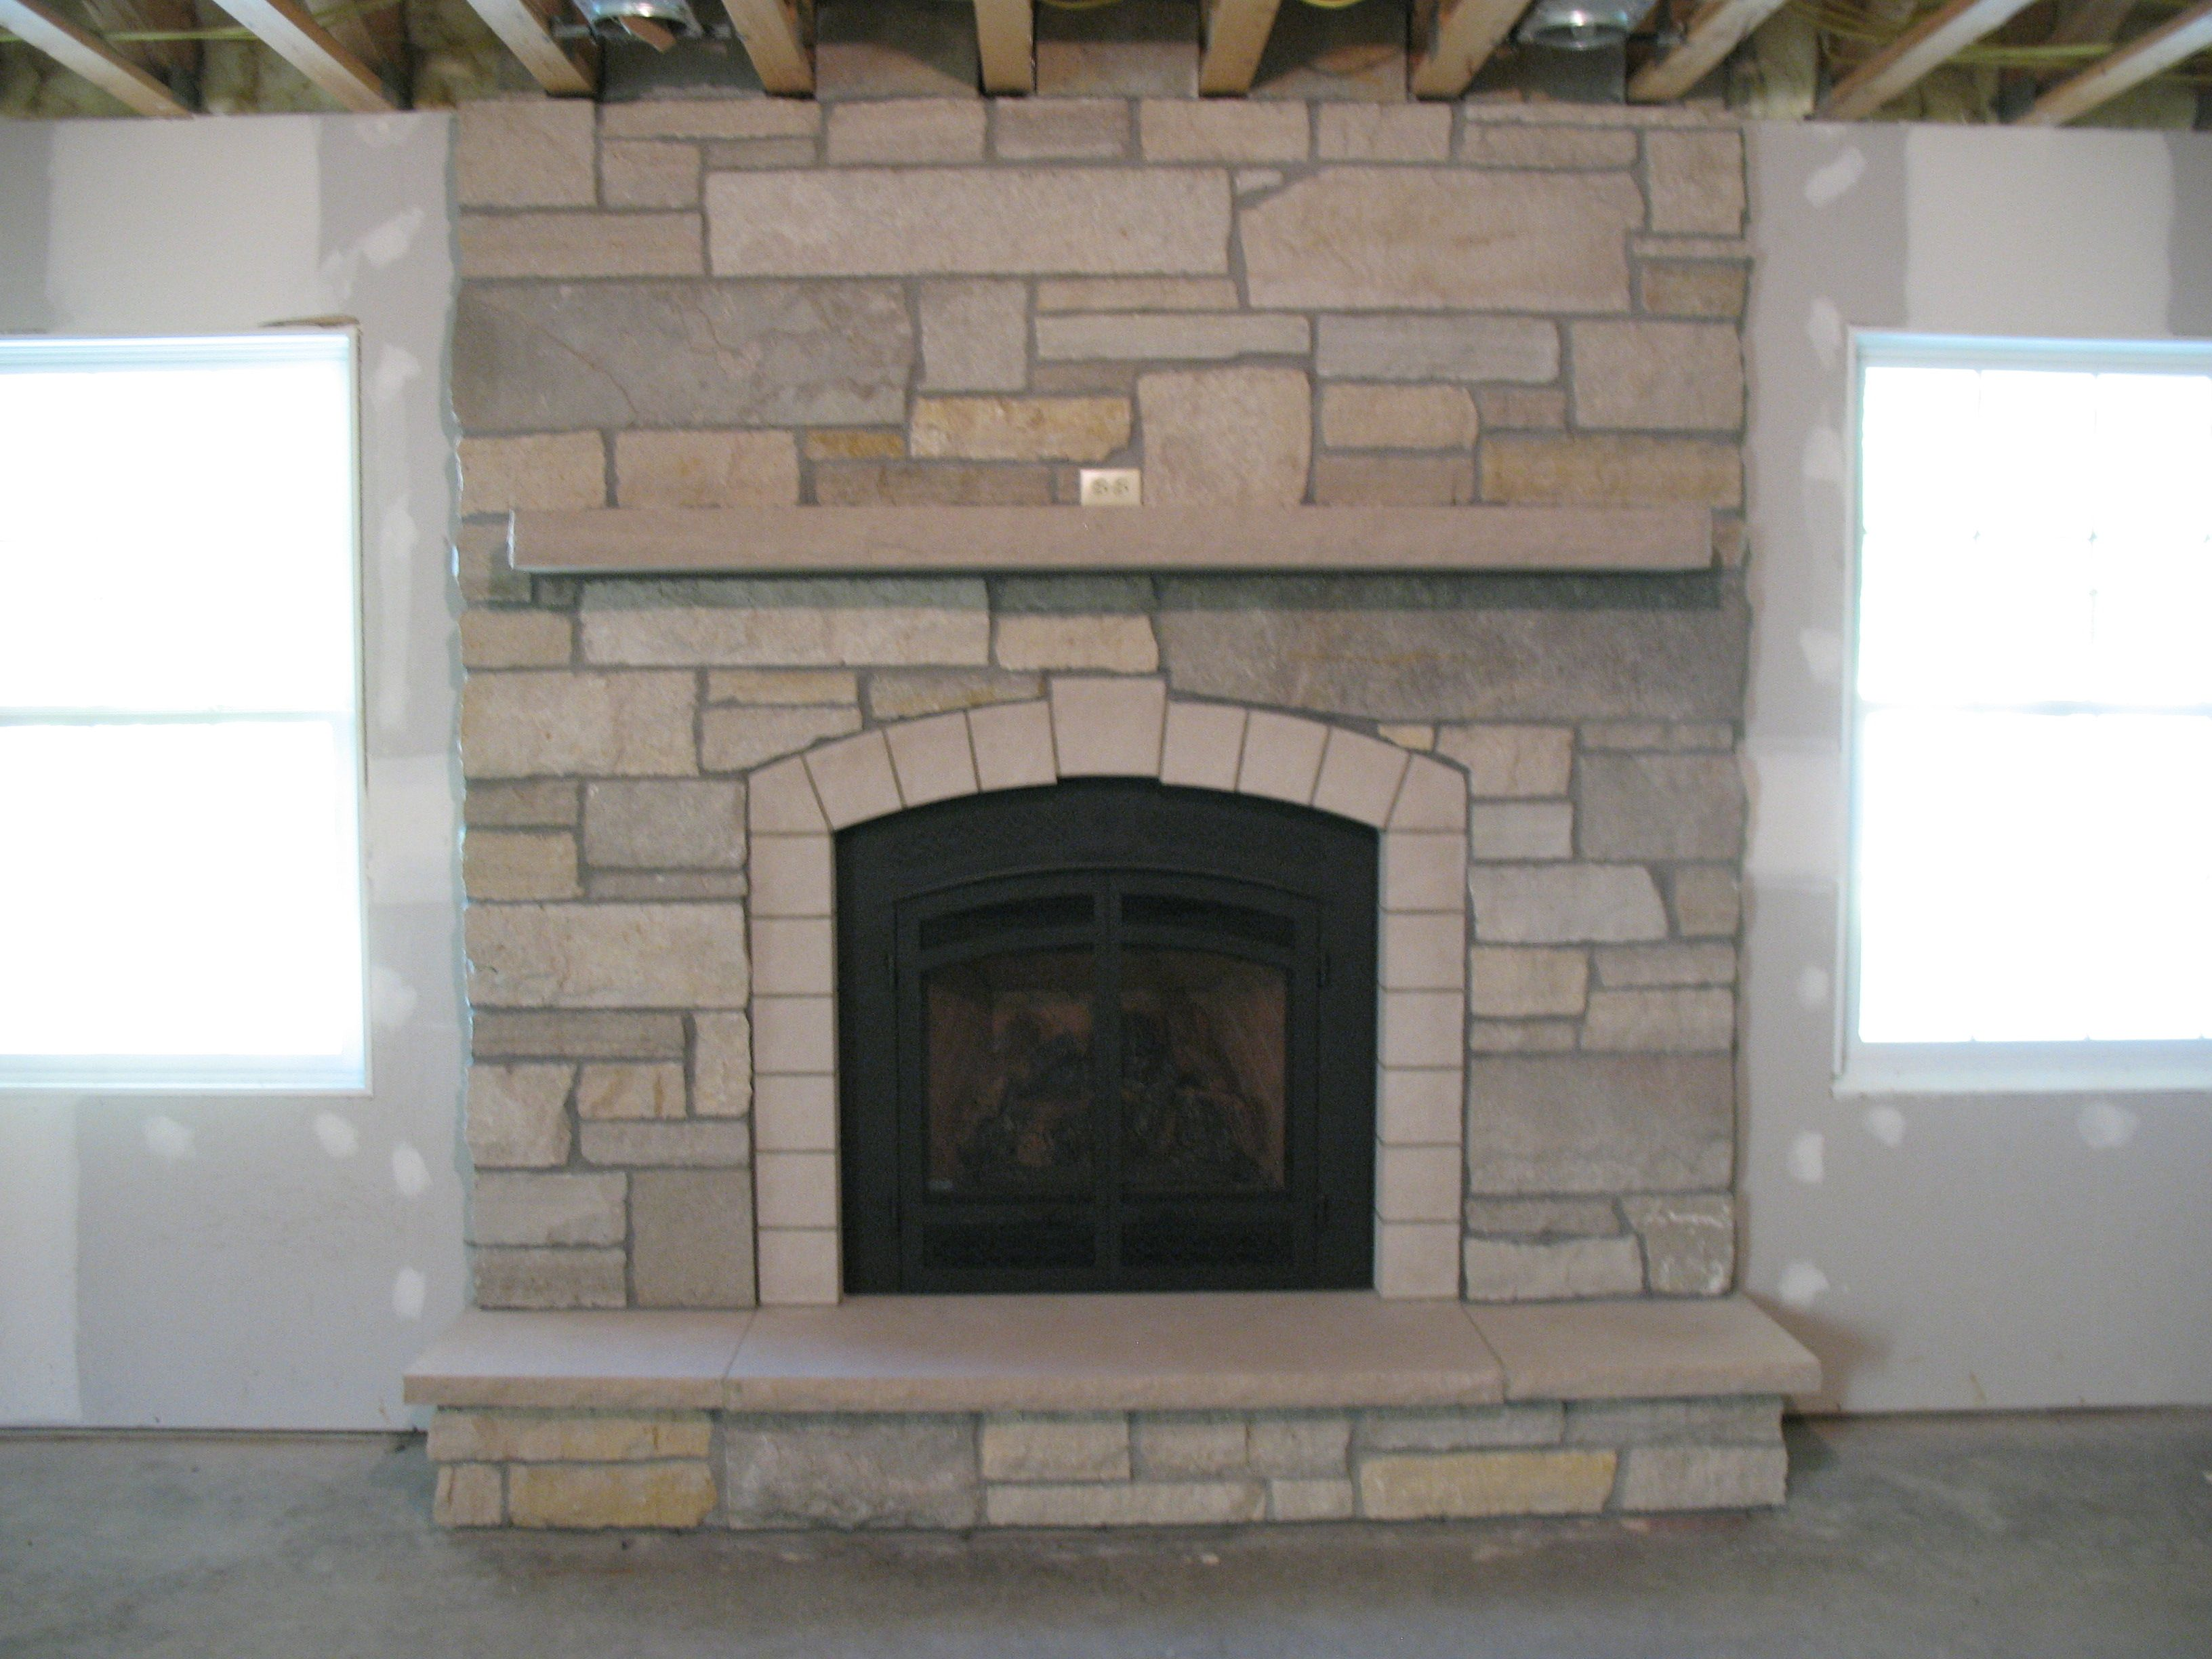 Stone Surround Built In Electric Fireplace From Dimplex Sale At Price USD  1299. Description From  Electric Fireplace Stone